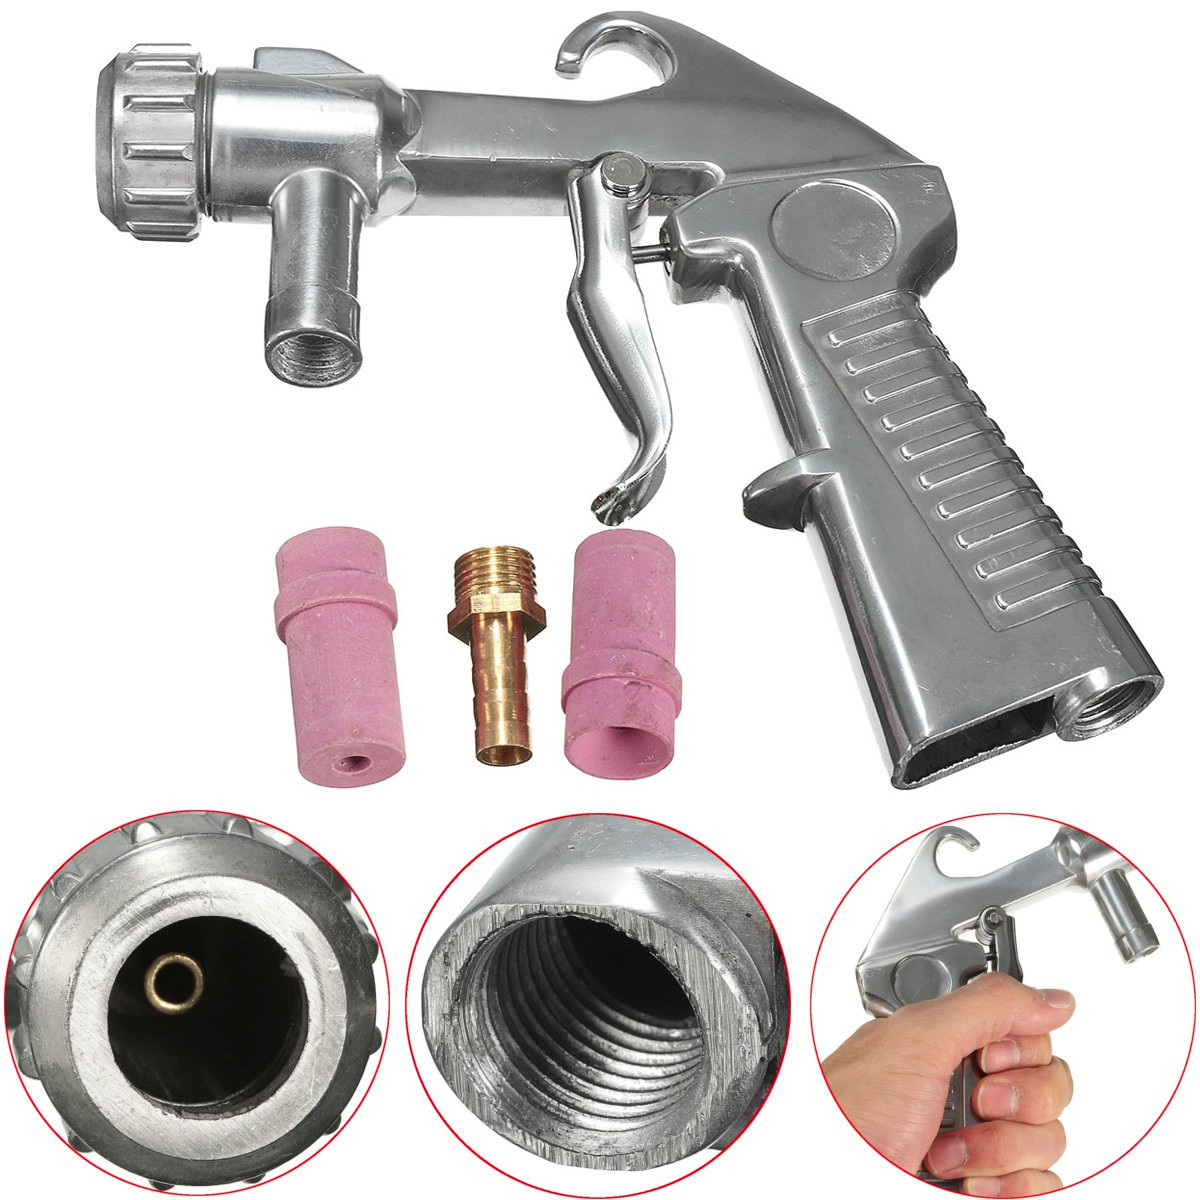 Sandblaster Feed Blast Guns  Siphon Sand Blasting Abrasive Tool Ceramic  Tools Sprayer  Tips Kit With 2 Nozzle 5/6mm